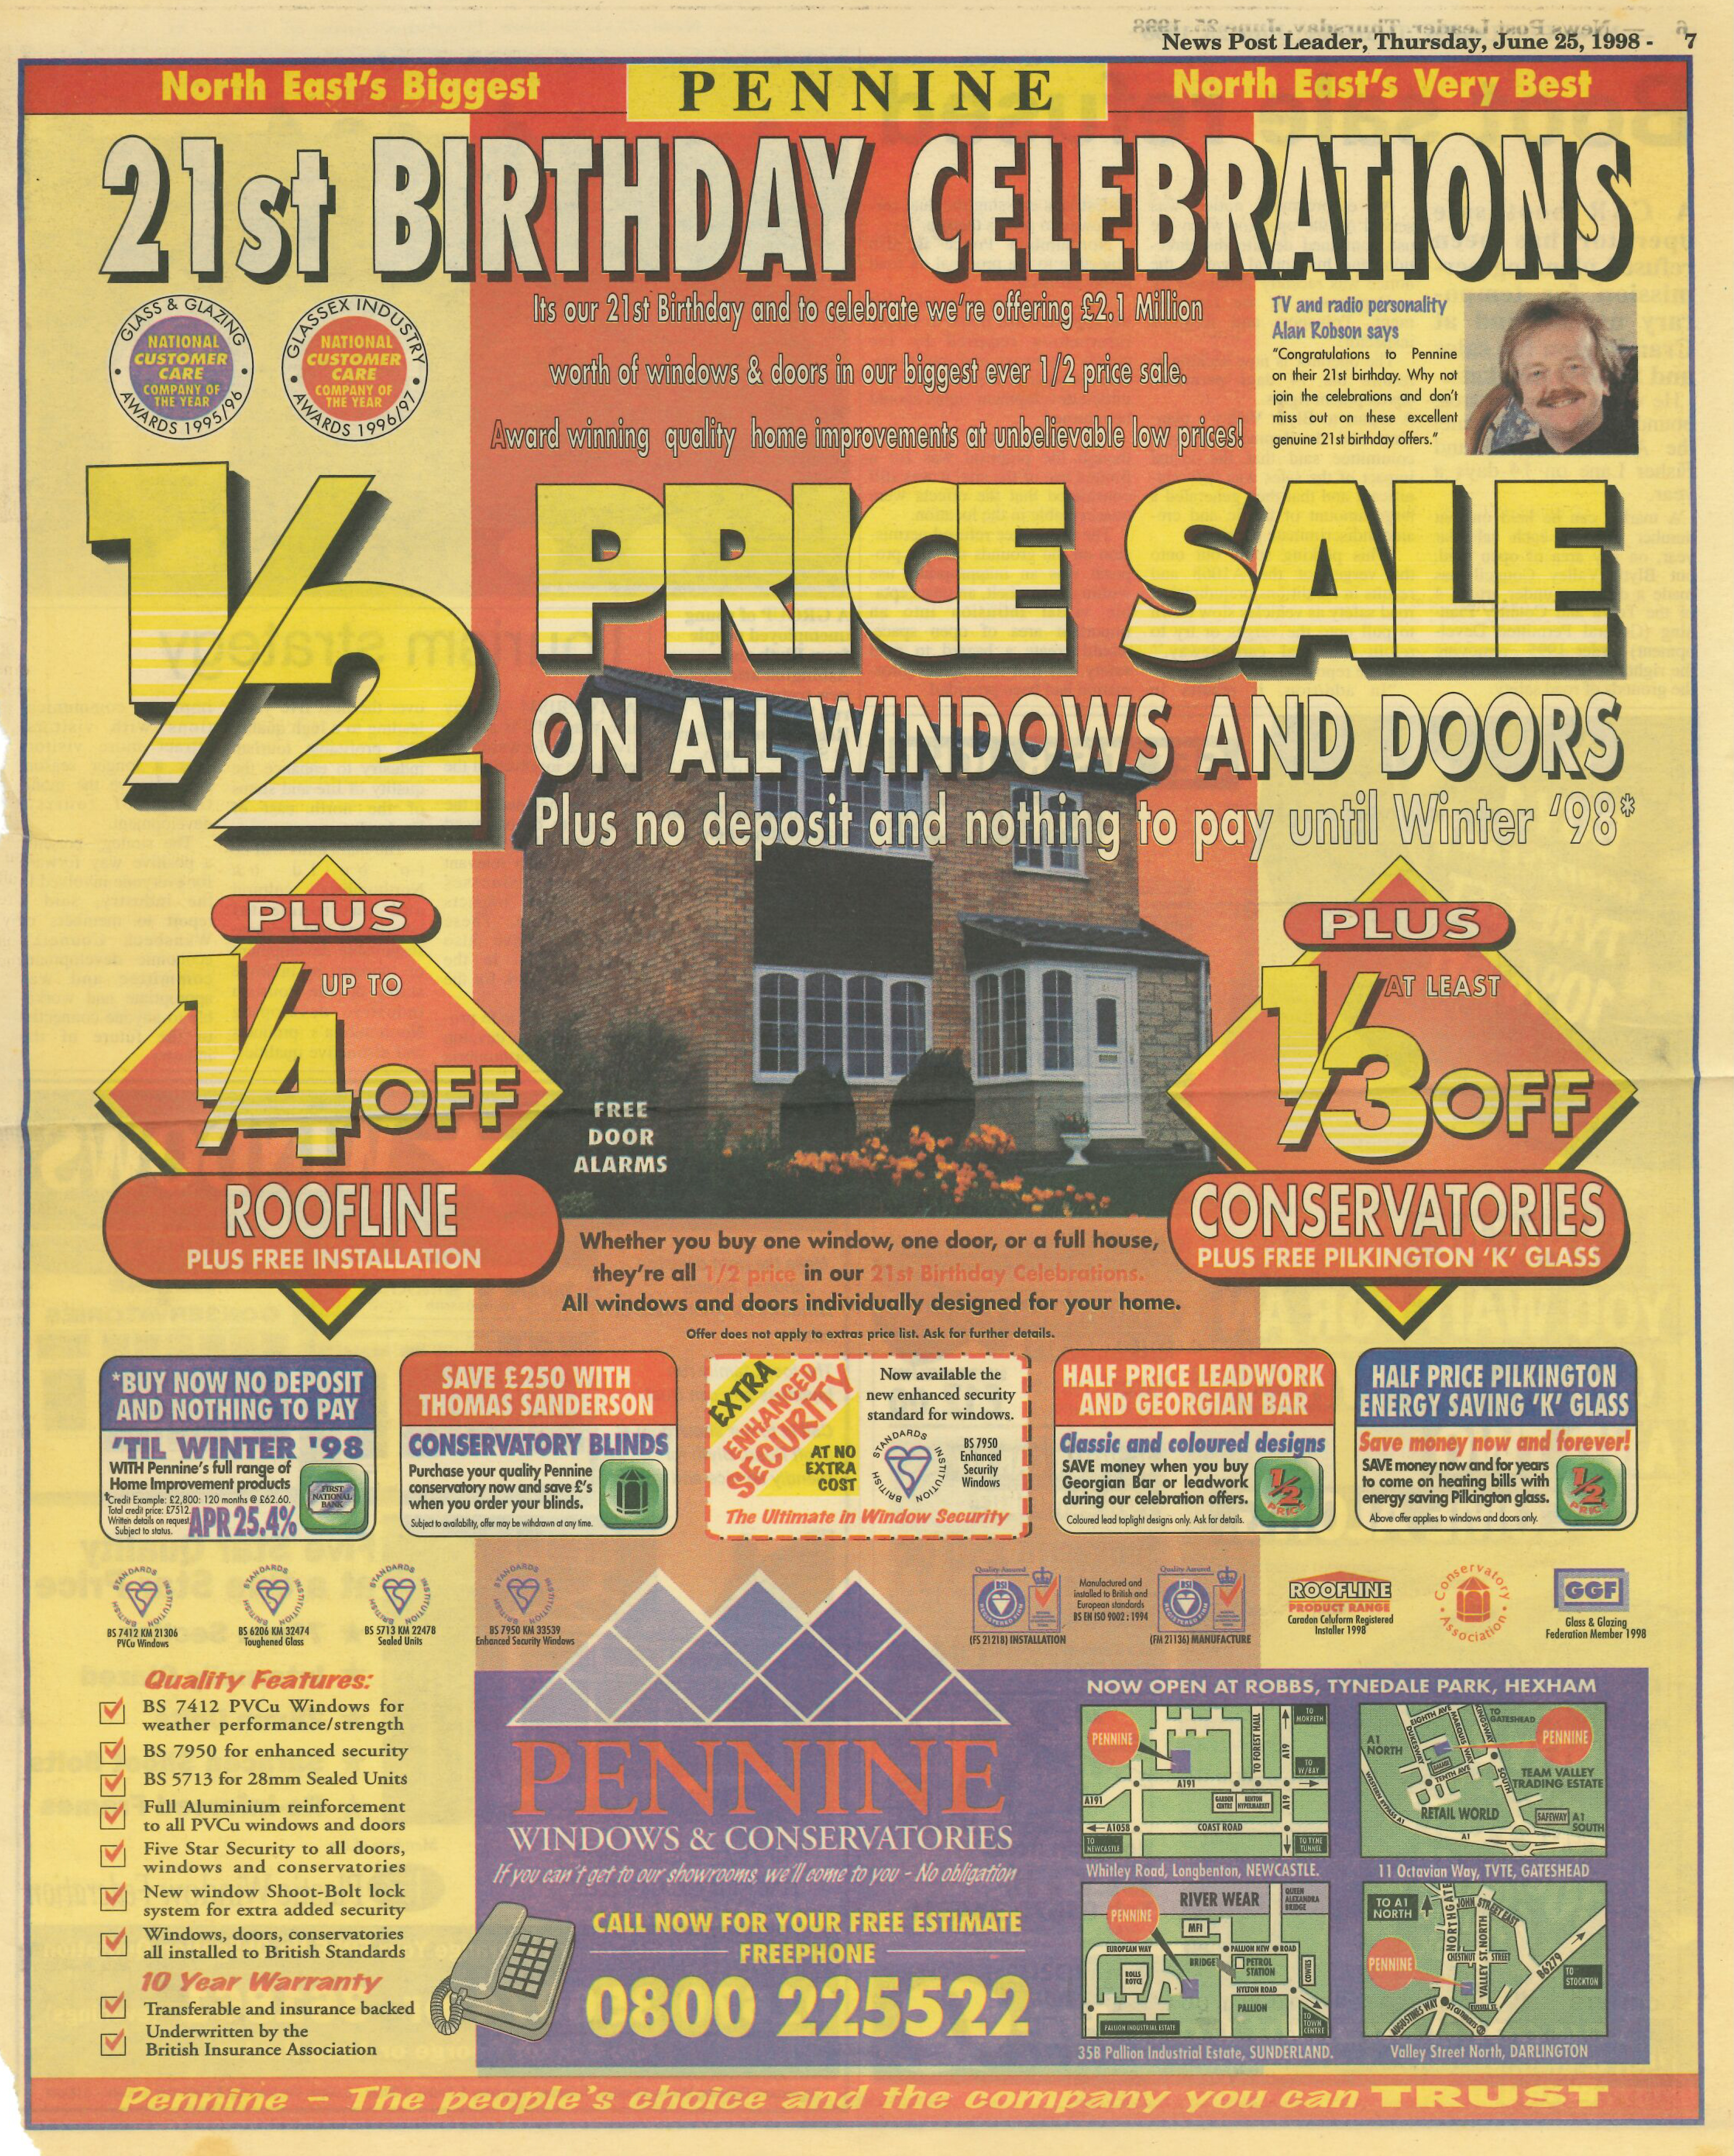 *Article* Alan Helps Celebrate Pennine Windows 21st Birthday